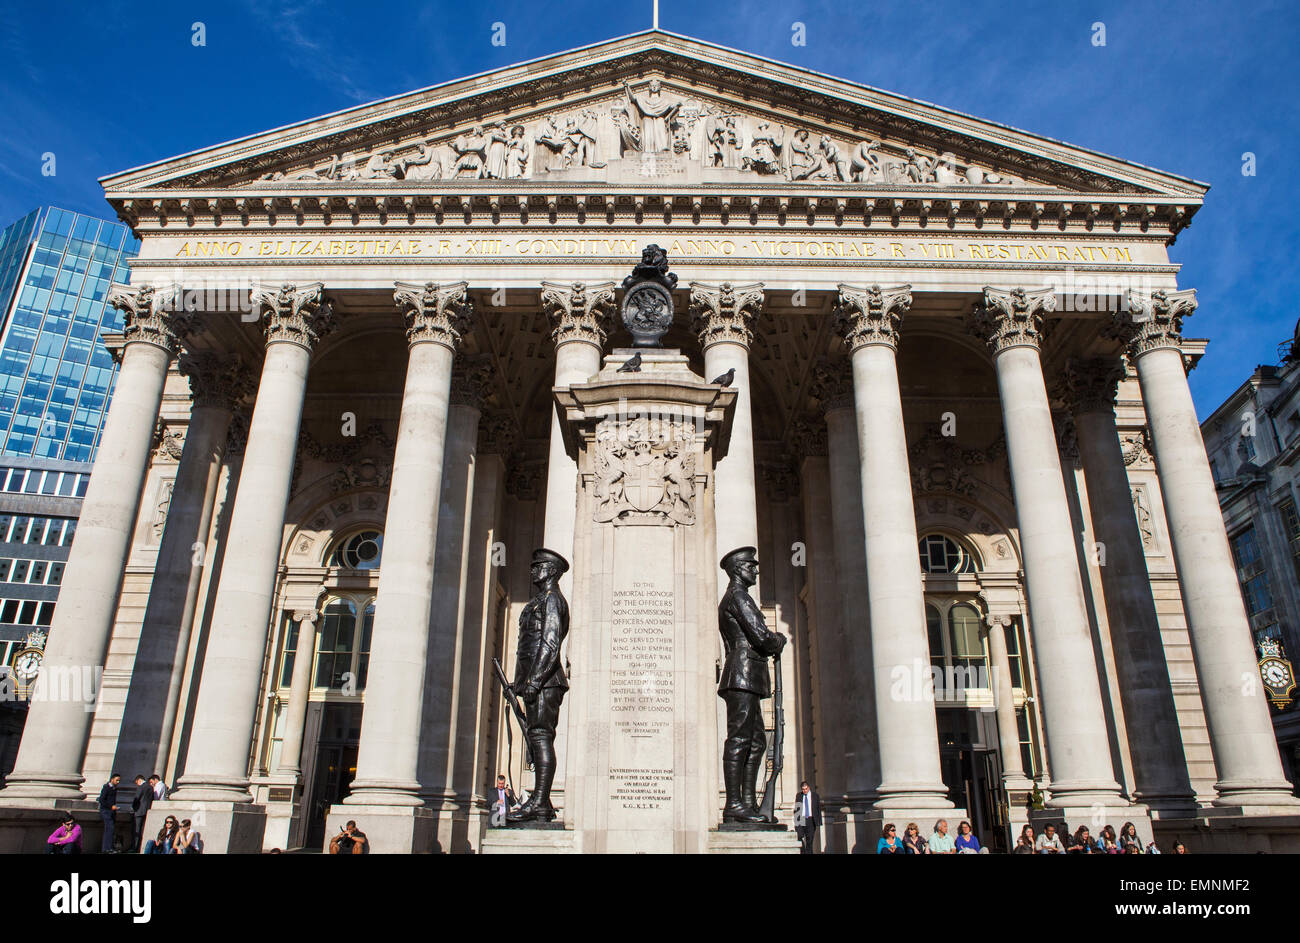 LONDON, UK - APRIL 20TH 2015: A view of the exterior of the Royal Exchange building in the City of London on 20th - Stock Image